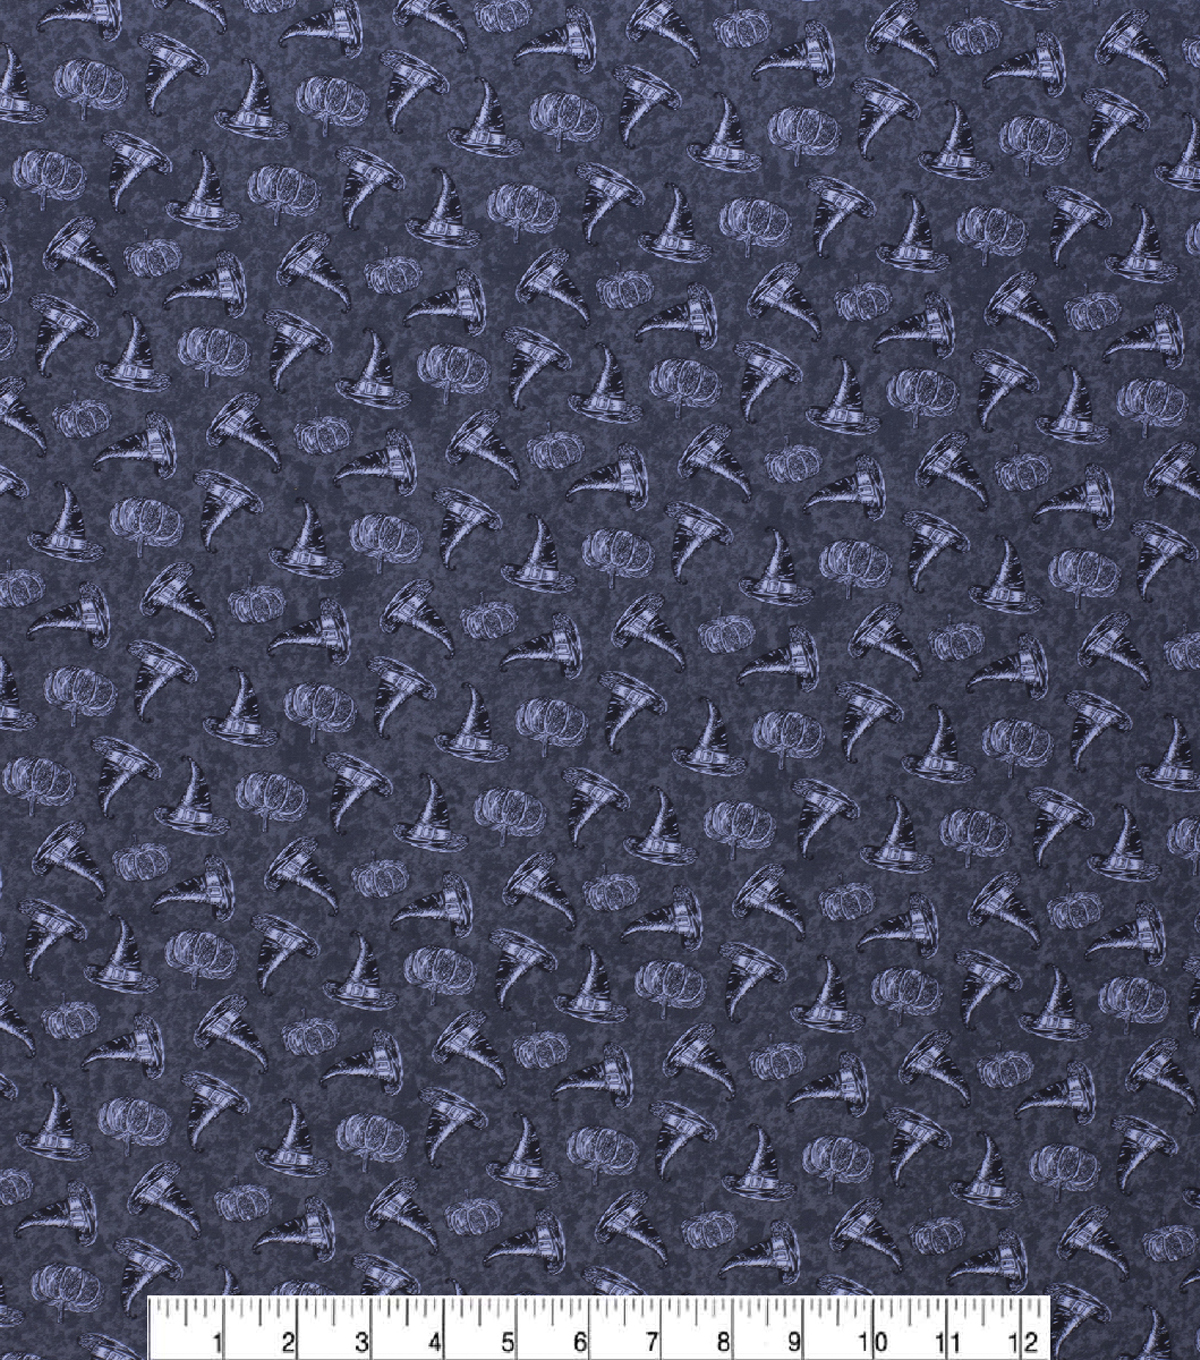 Halloween Cotton Fabric-Tossed Witches Hats & Pumkins